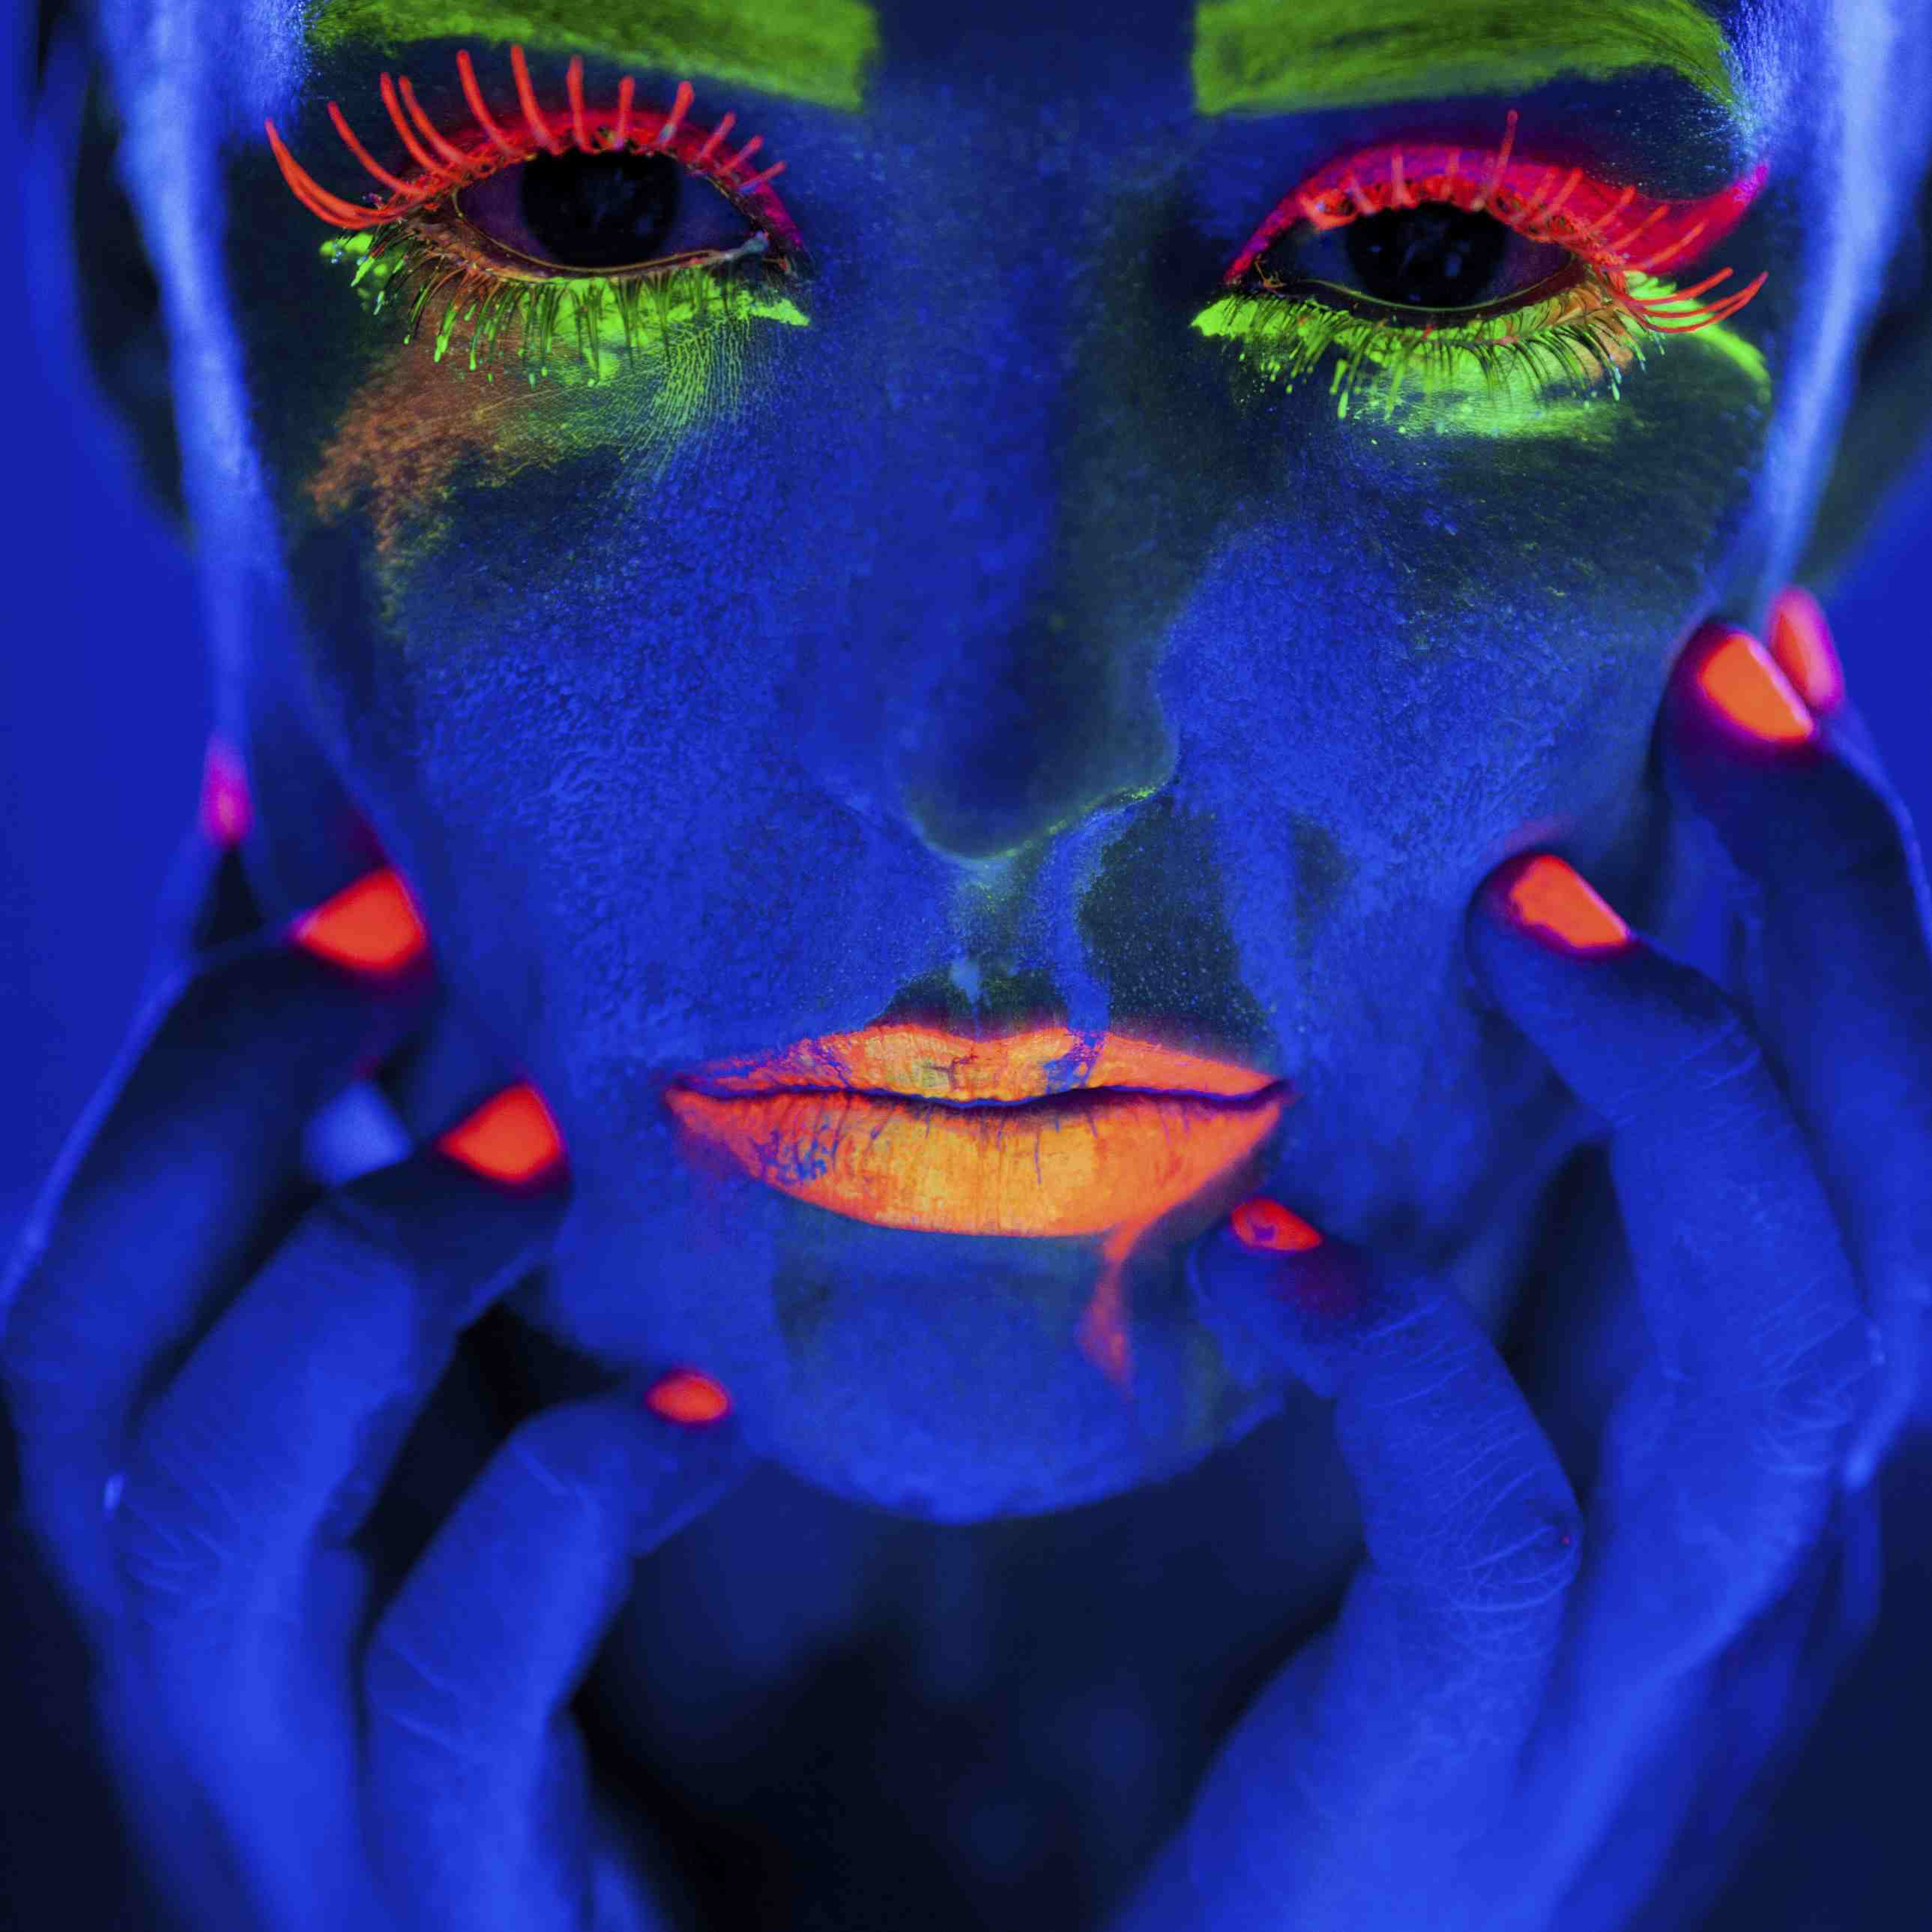 16 Things That Glow Under Black Light